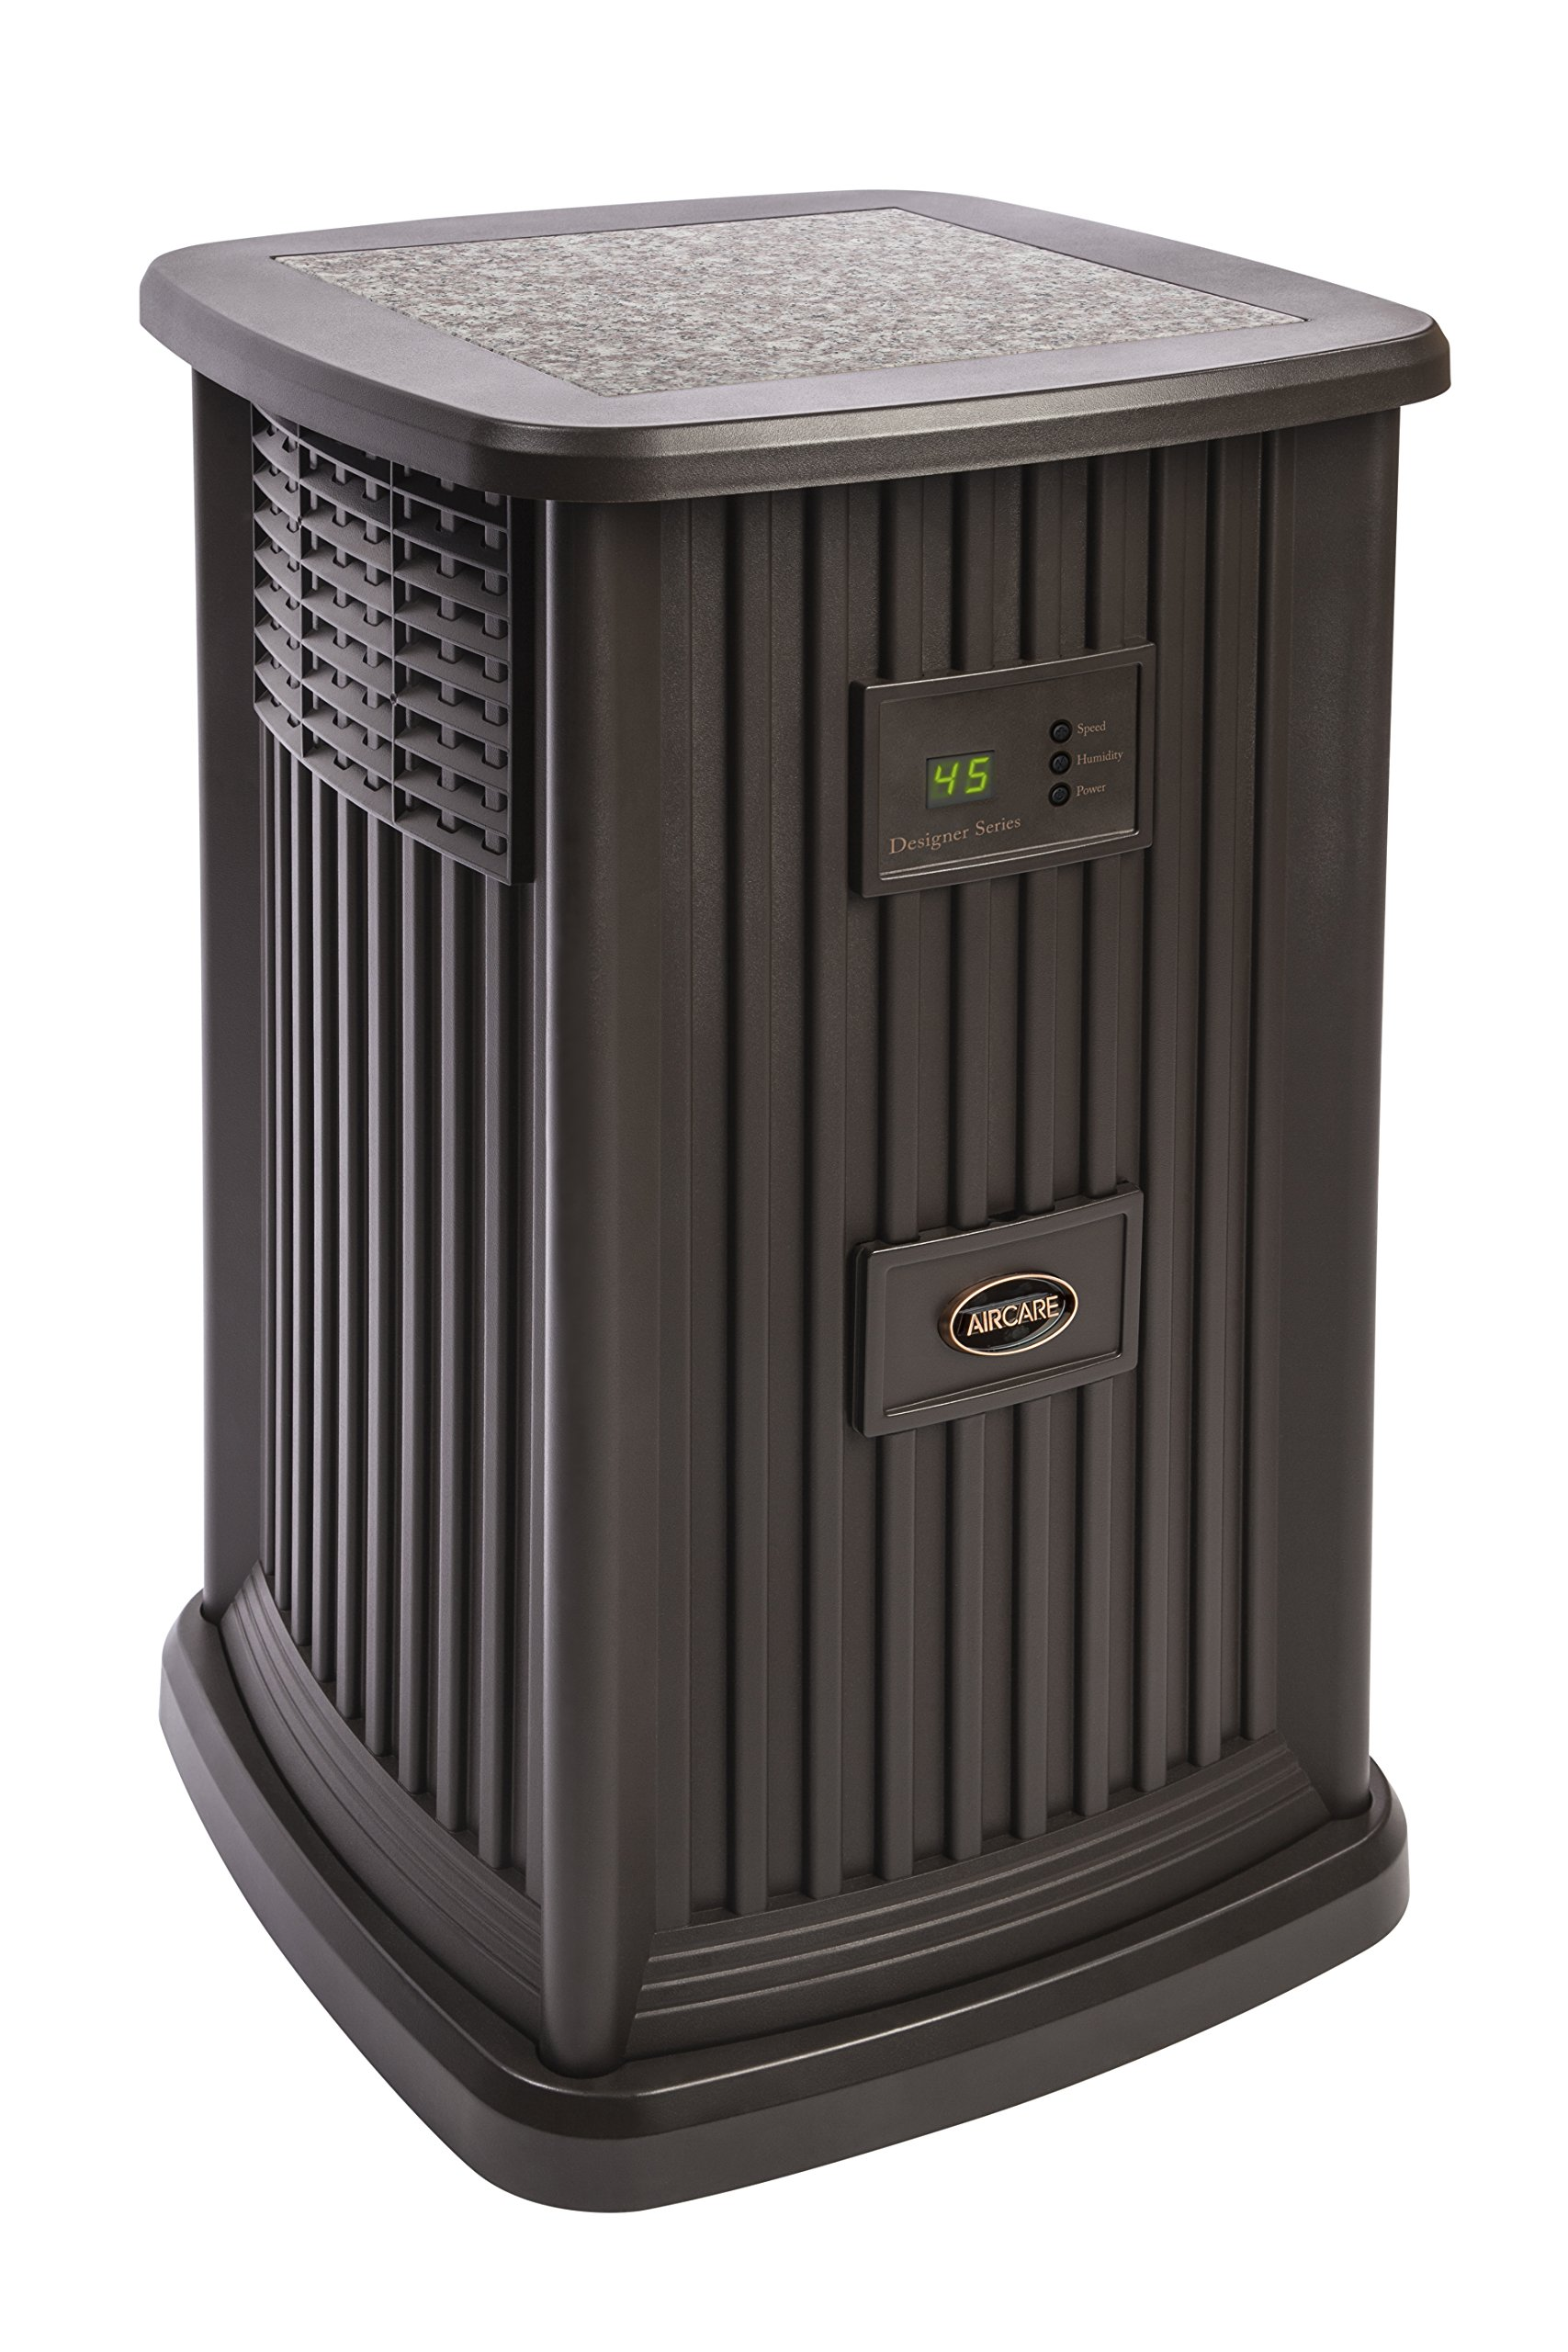 AIRCARE EP9 800 Digital Whole-House Pedestal-Style Evaporative Humidifier, Espresso by Essick Air (Image #2)